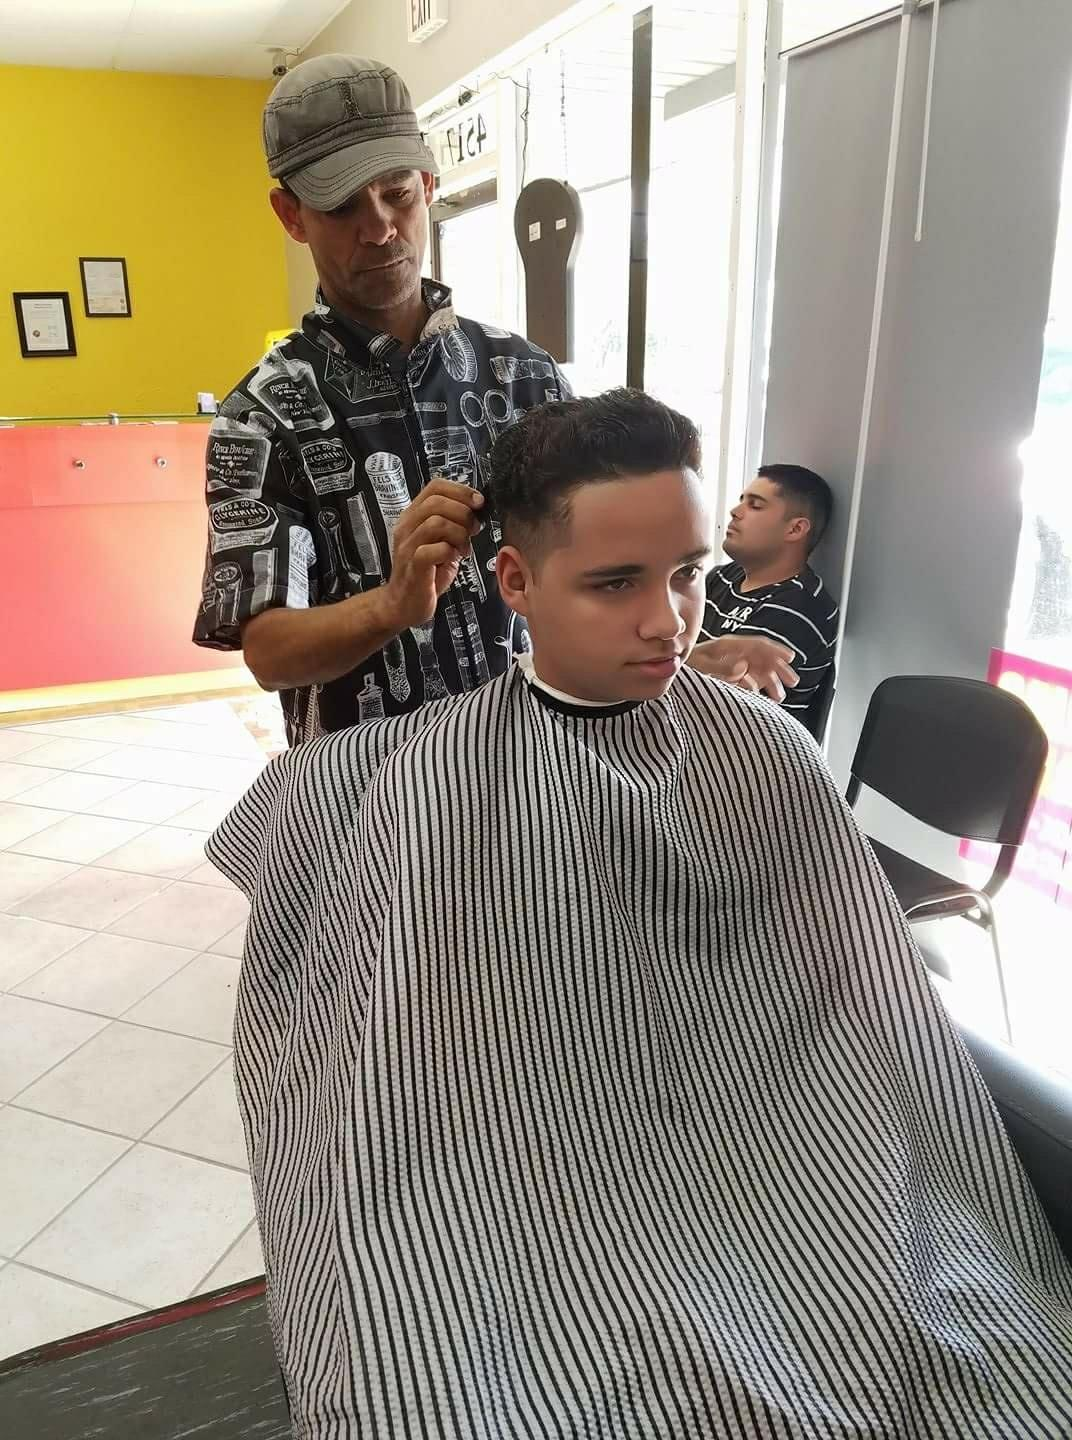 family style hair salon kidsmania family hair salon amp barber shop in sarasota fl 4334